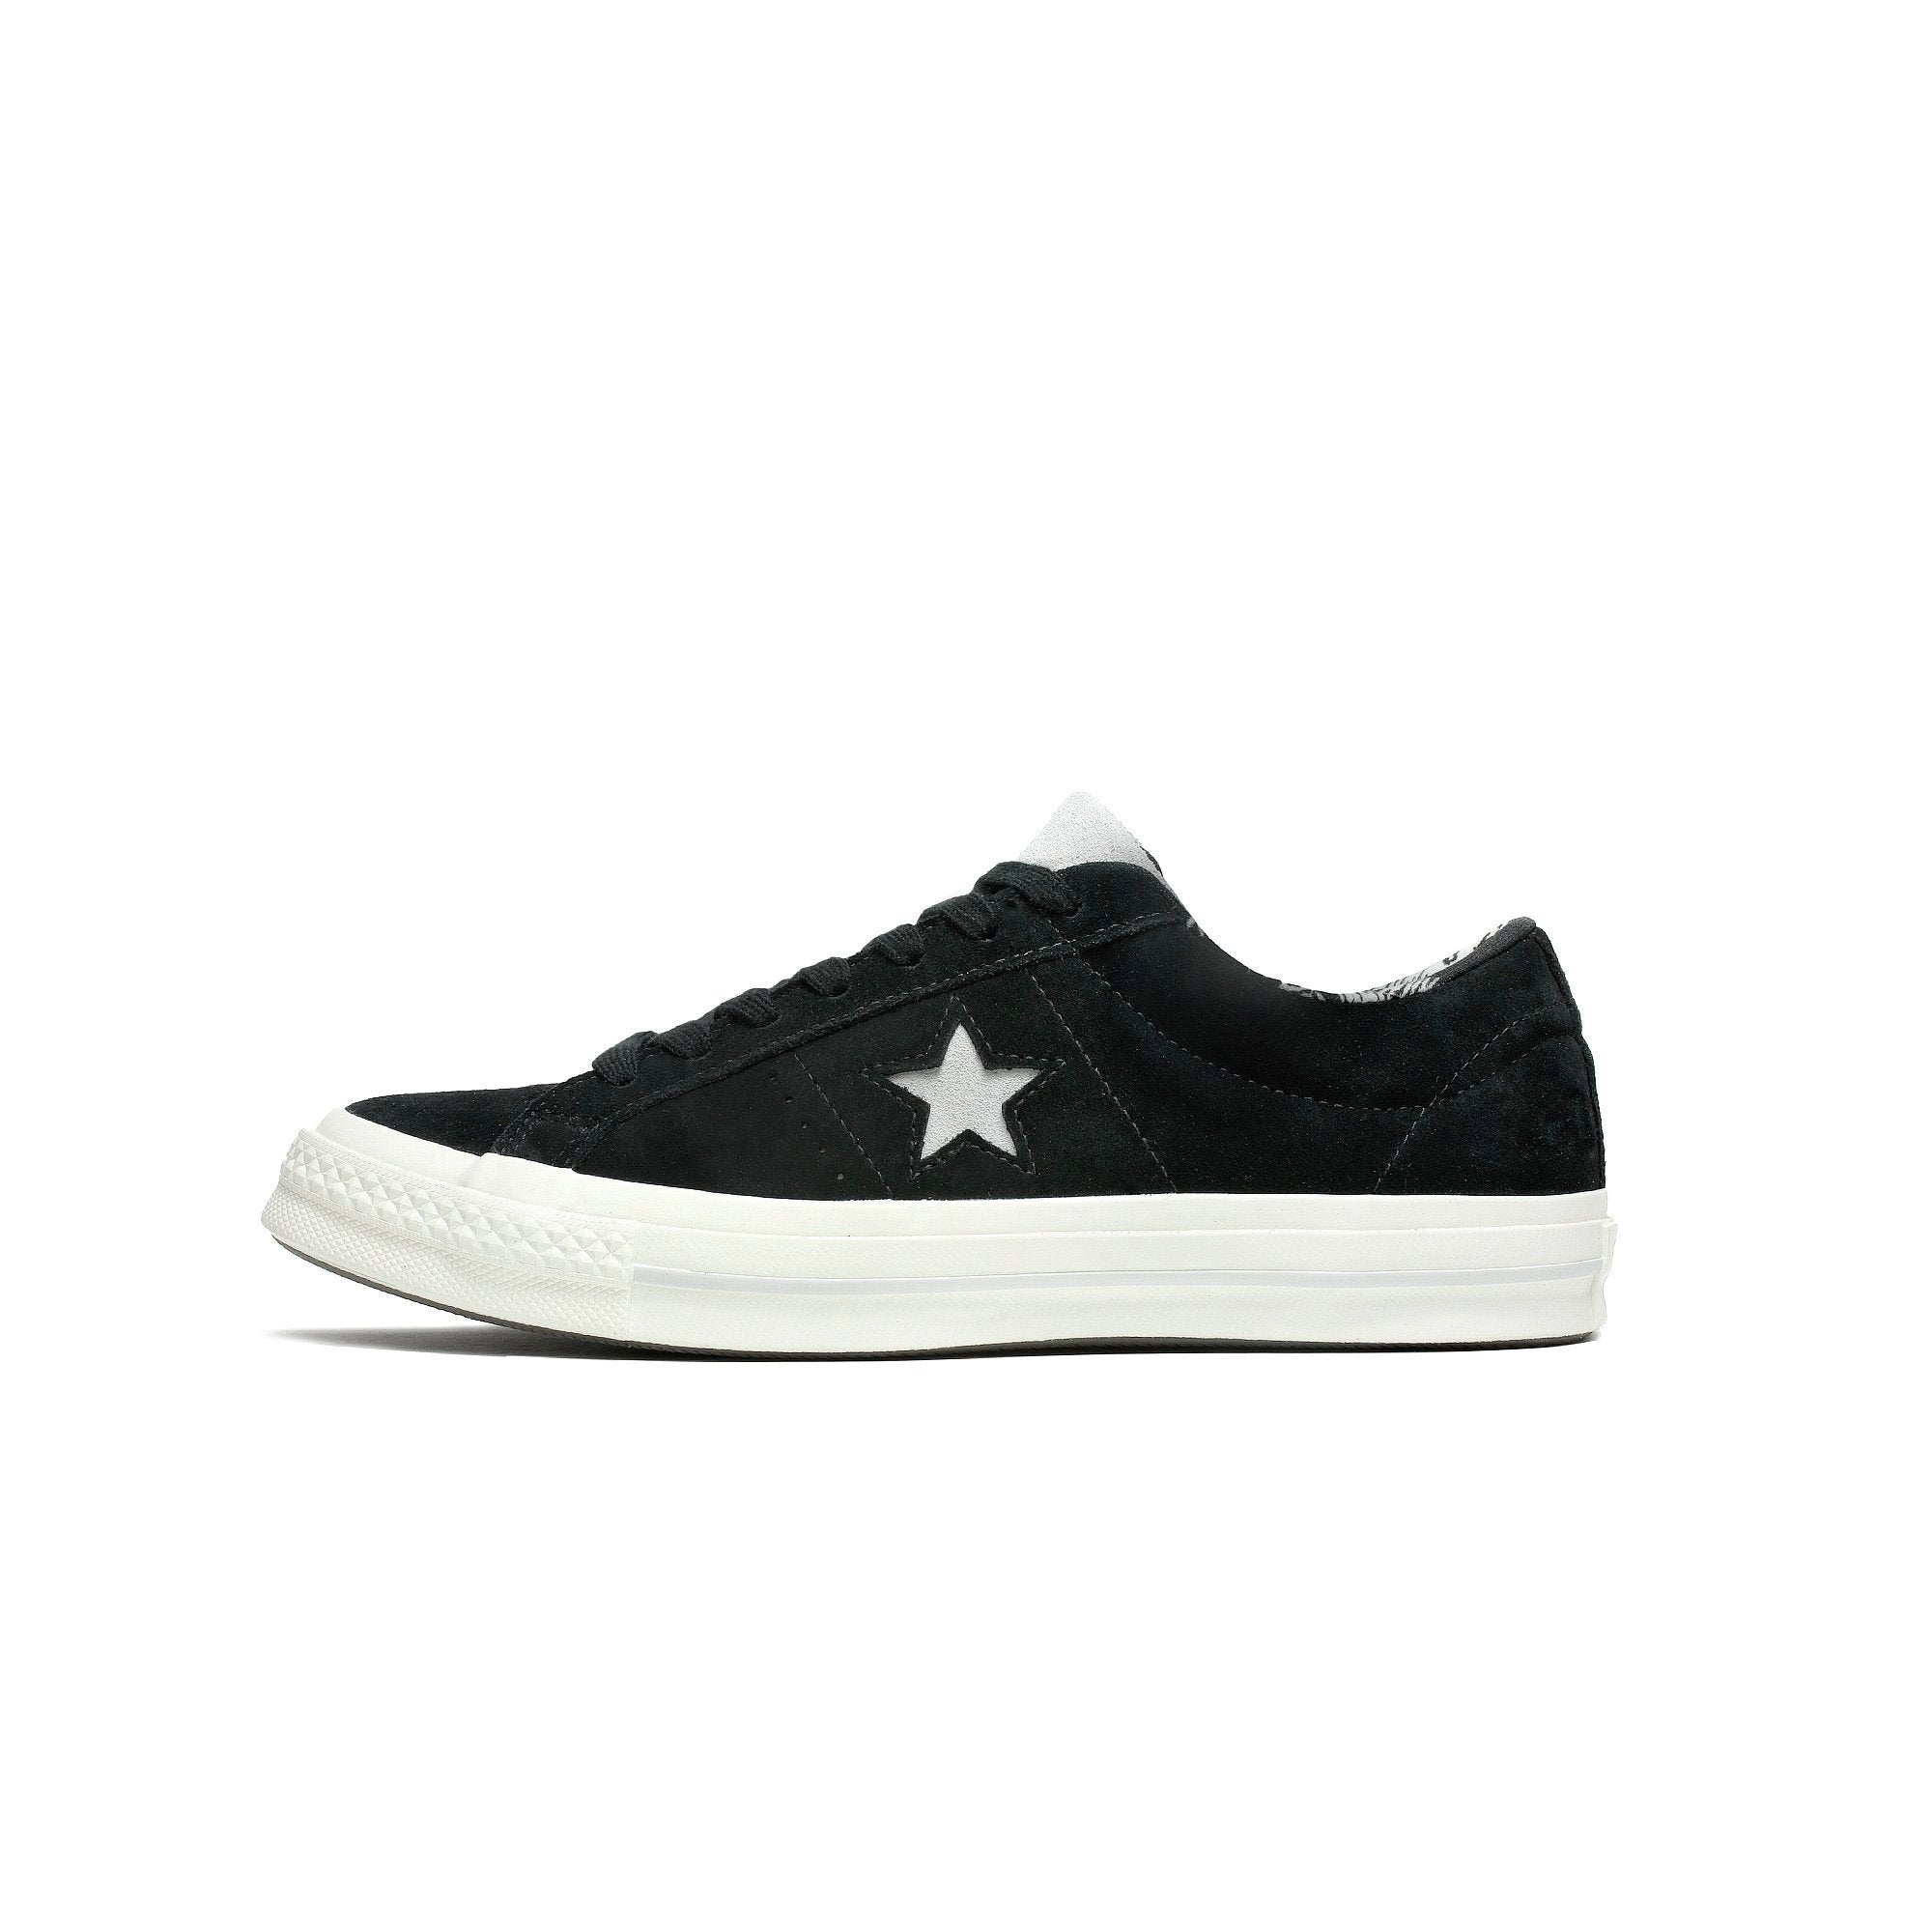 b5e9f46da86e Mens Converse One Star OX Black Mouse Egret 160584C